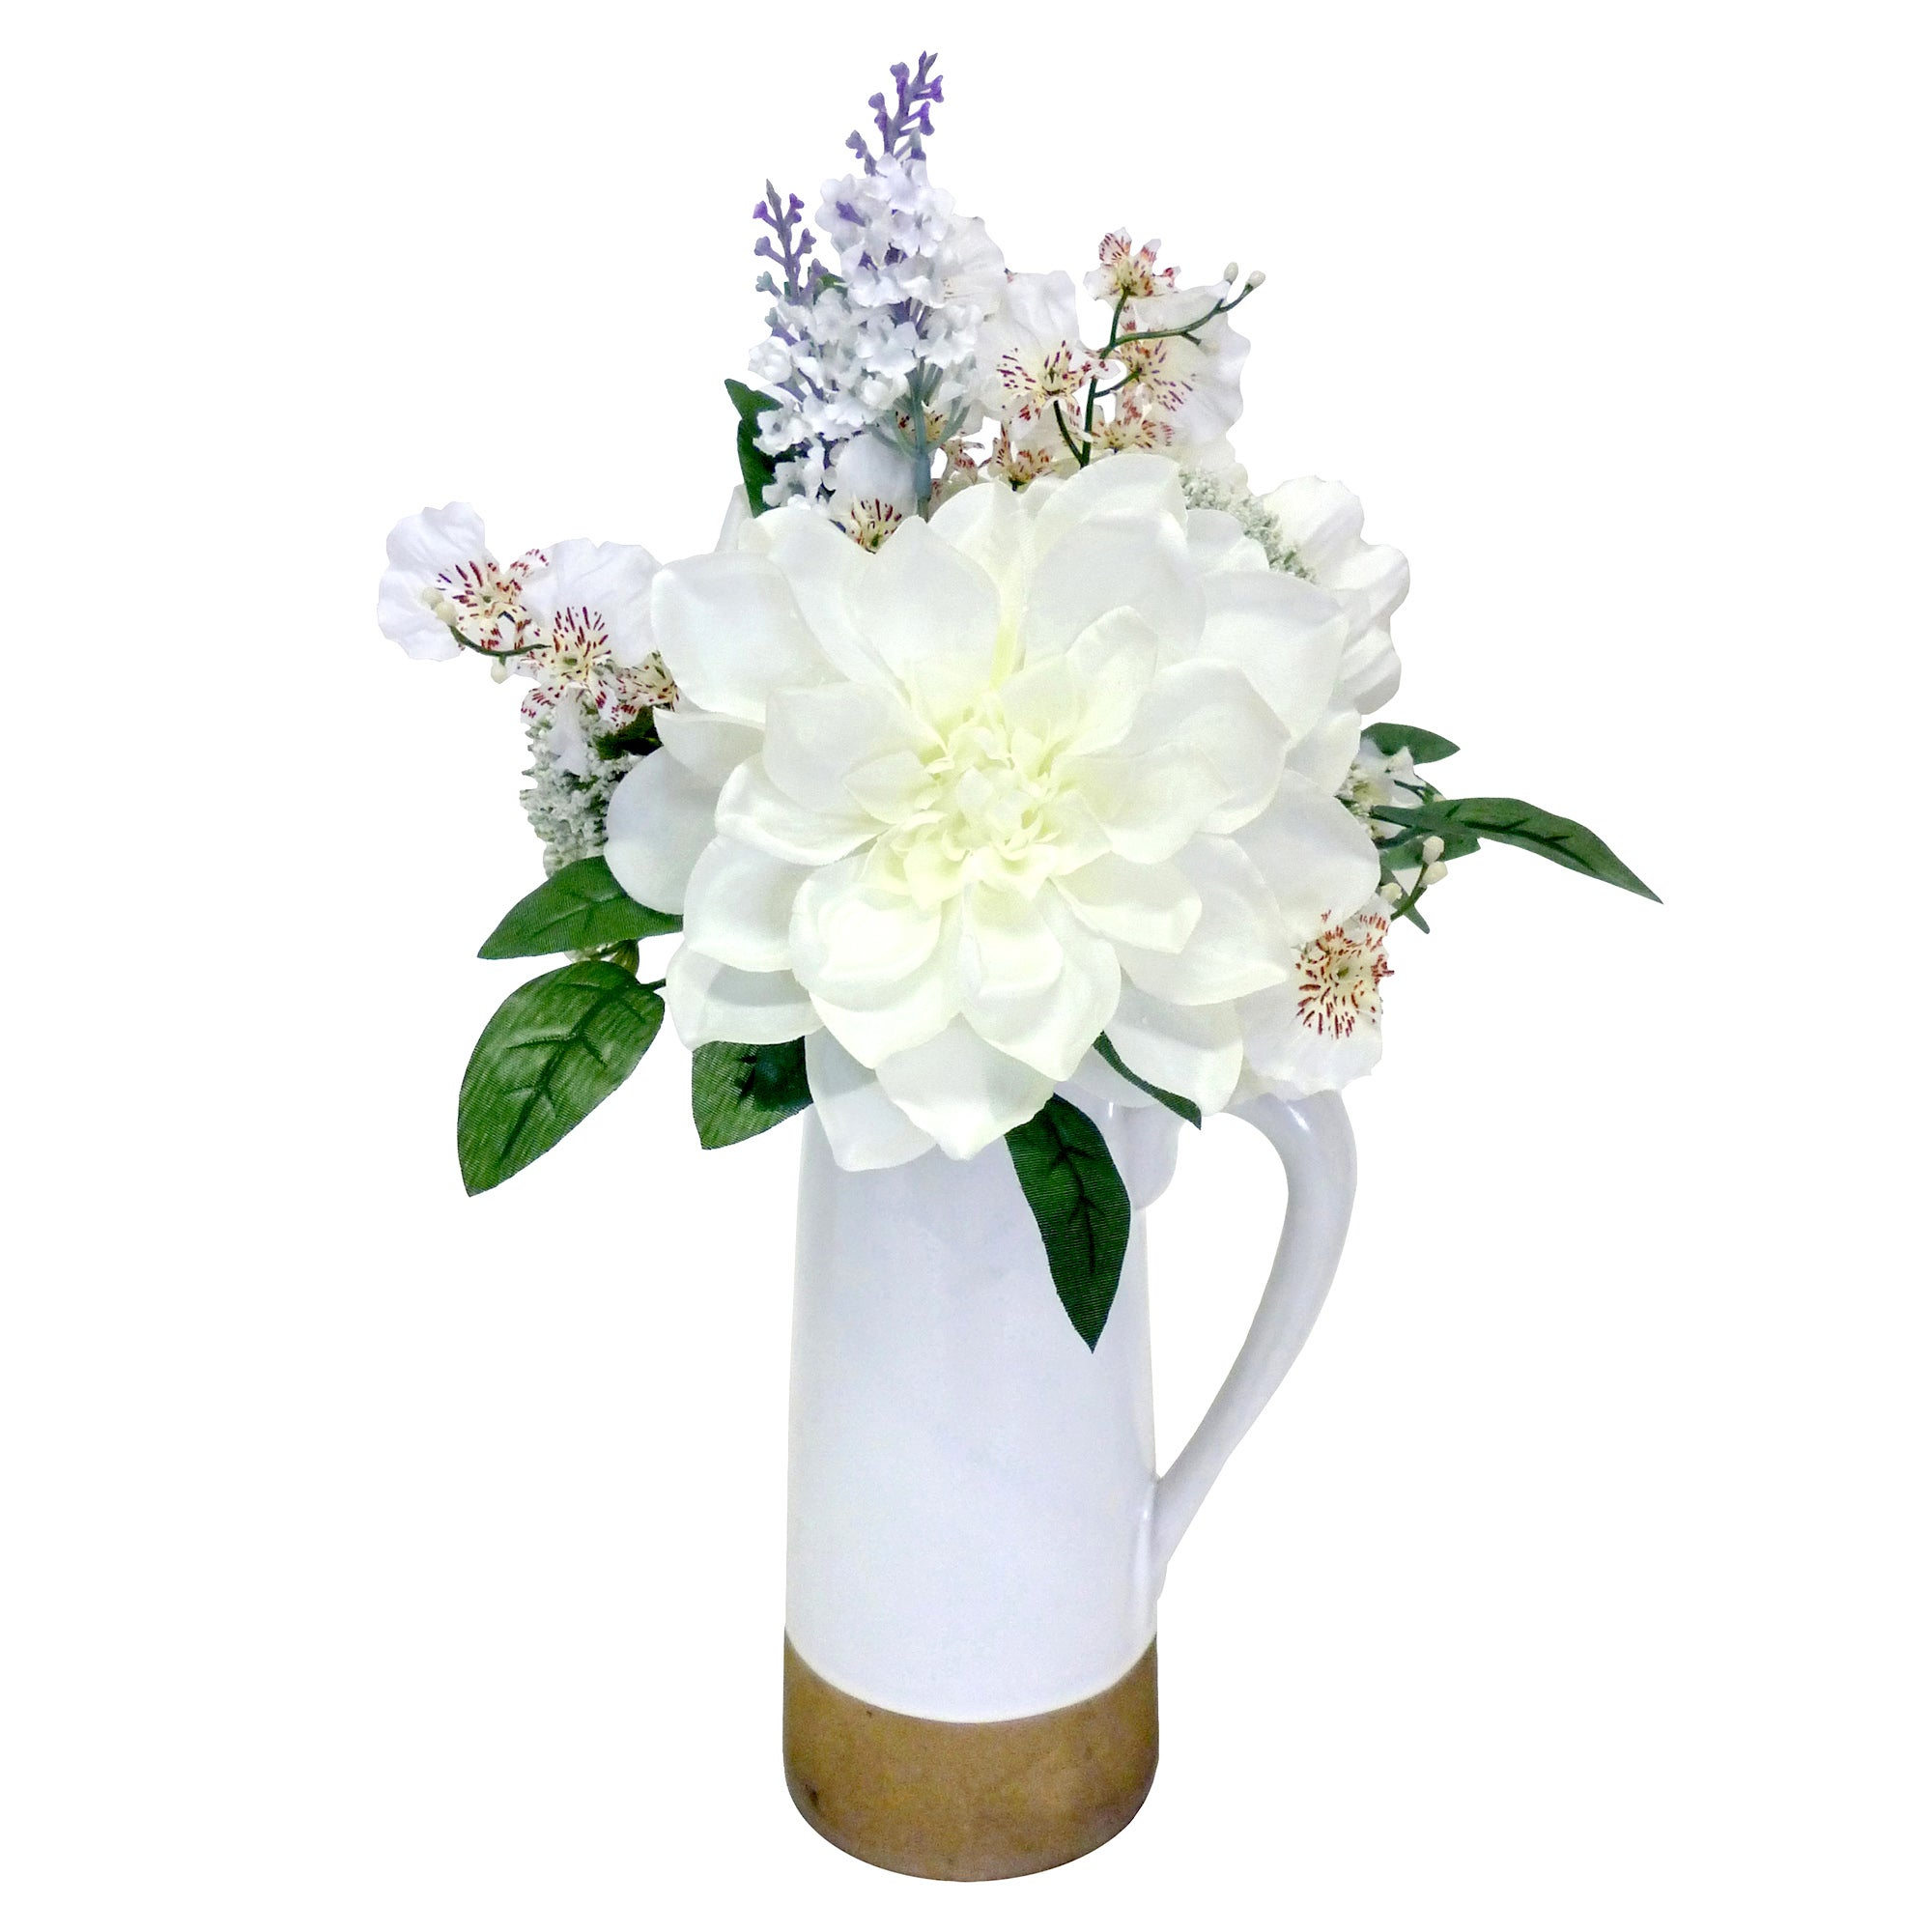 Image of Flowers in Ceramic Jug White